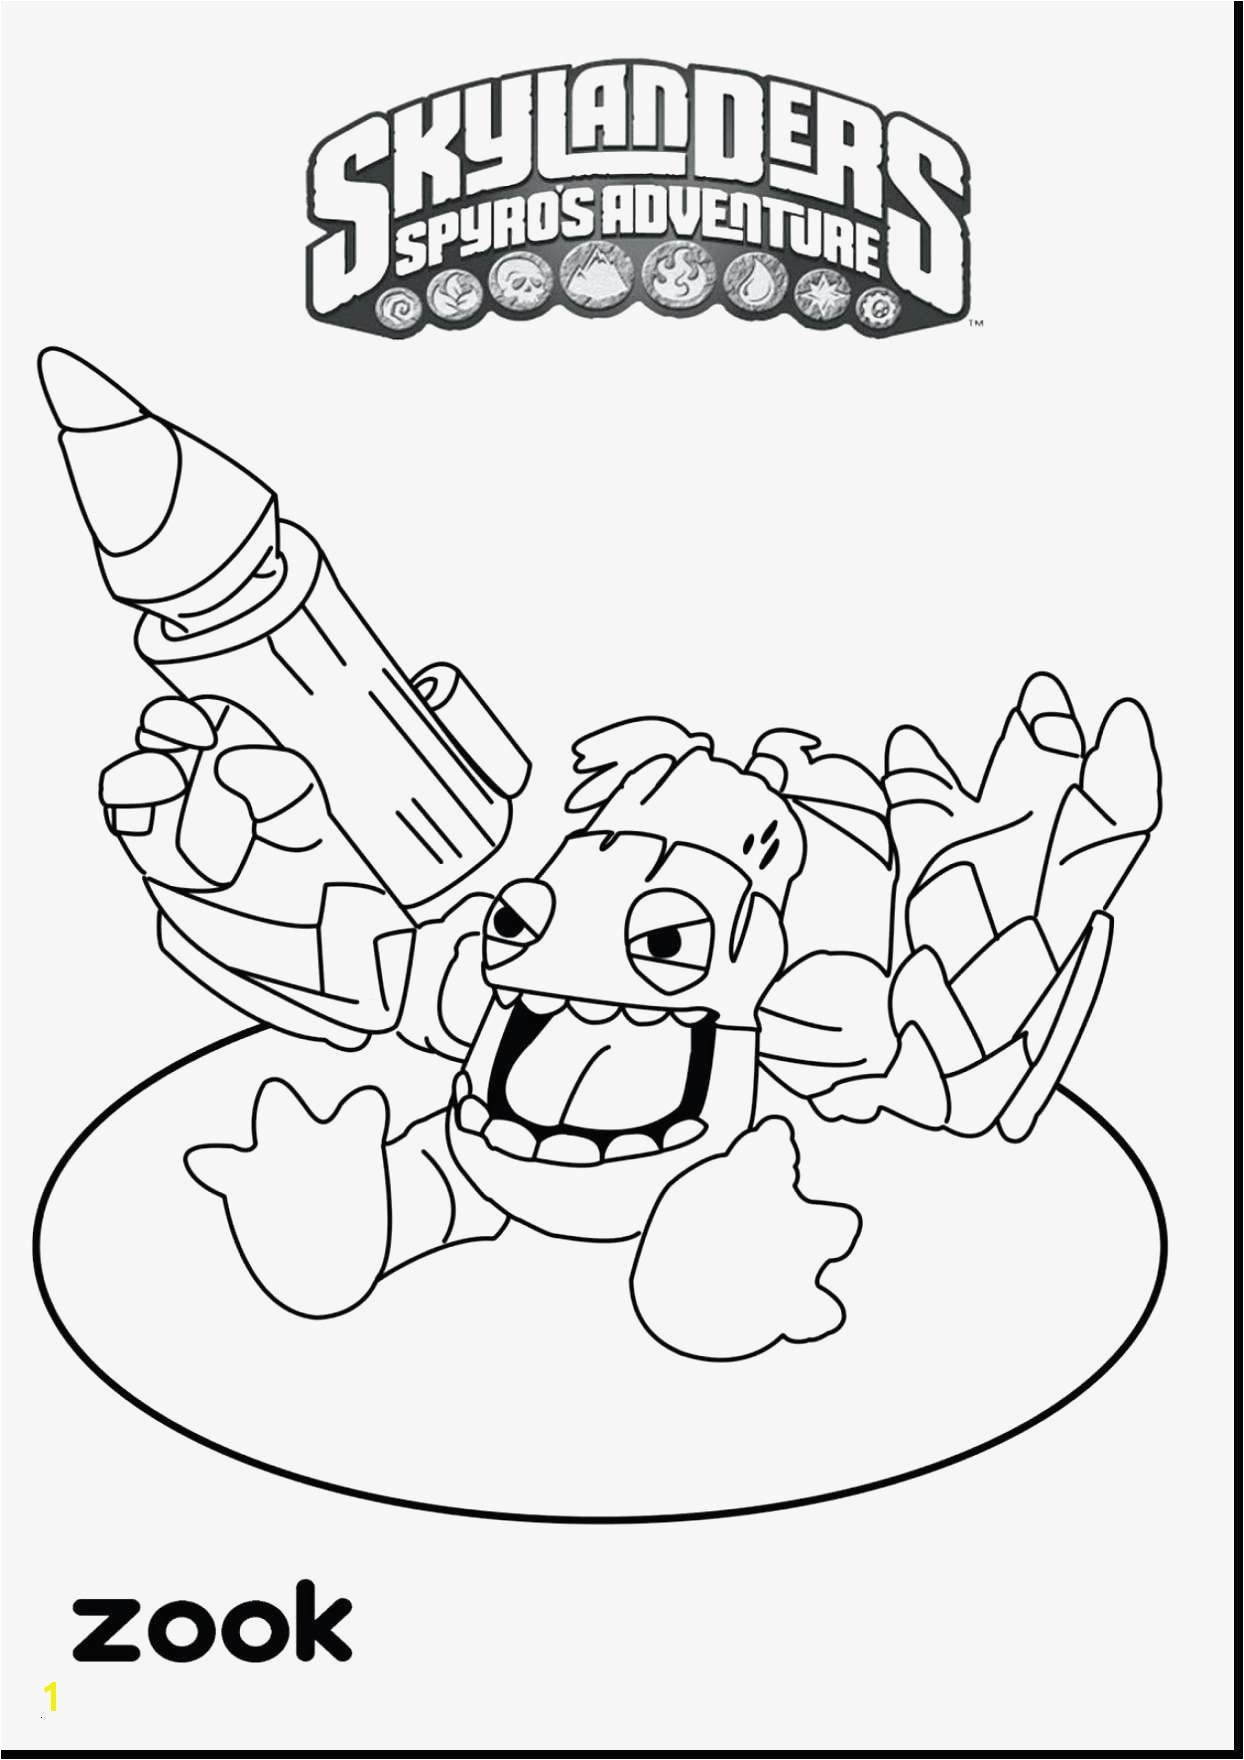 Coloring Pages Kids Cool Coloring Page Inspirational Witch Coloring Pages New Crayola Pages 0d Coloring